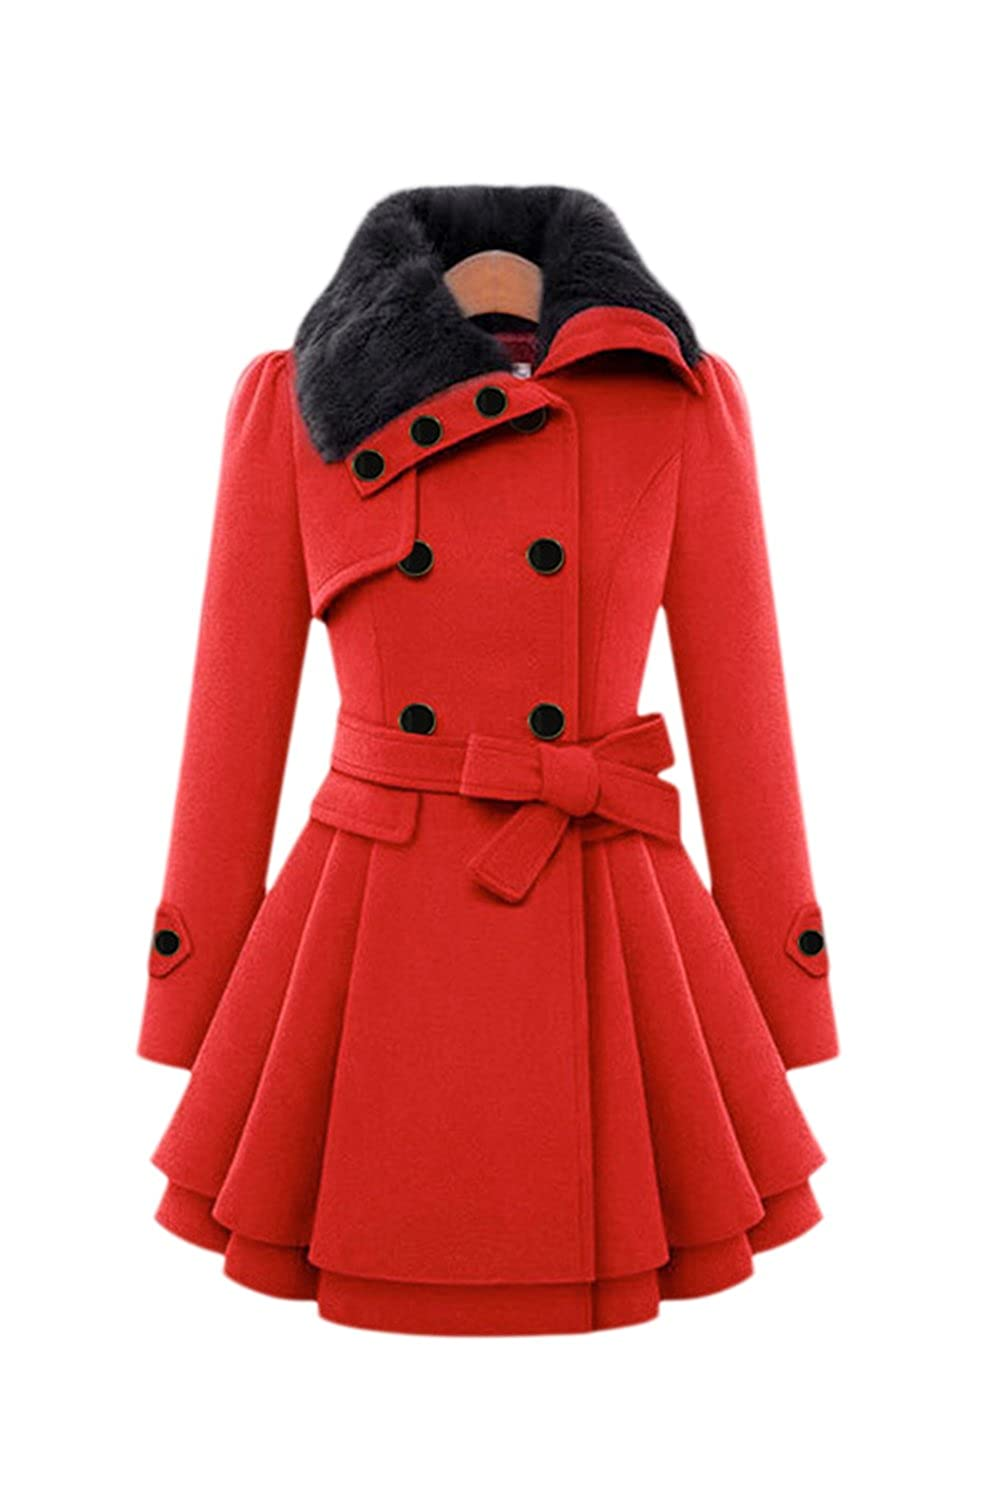 Zilcremo Women Plus Size Winter Elegant Warm Lined Woolen Trenchcoat Outerwear CAFZ1447